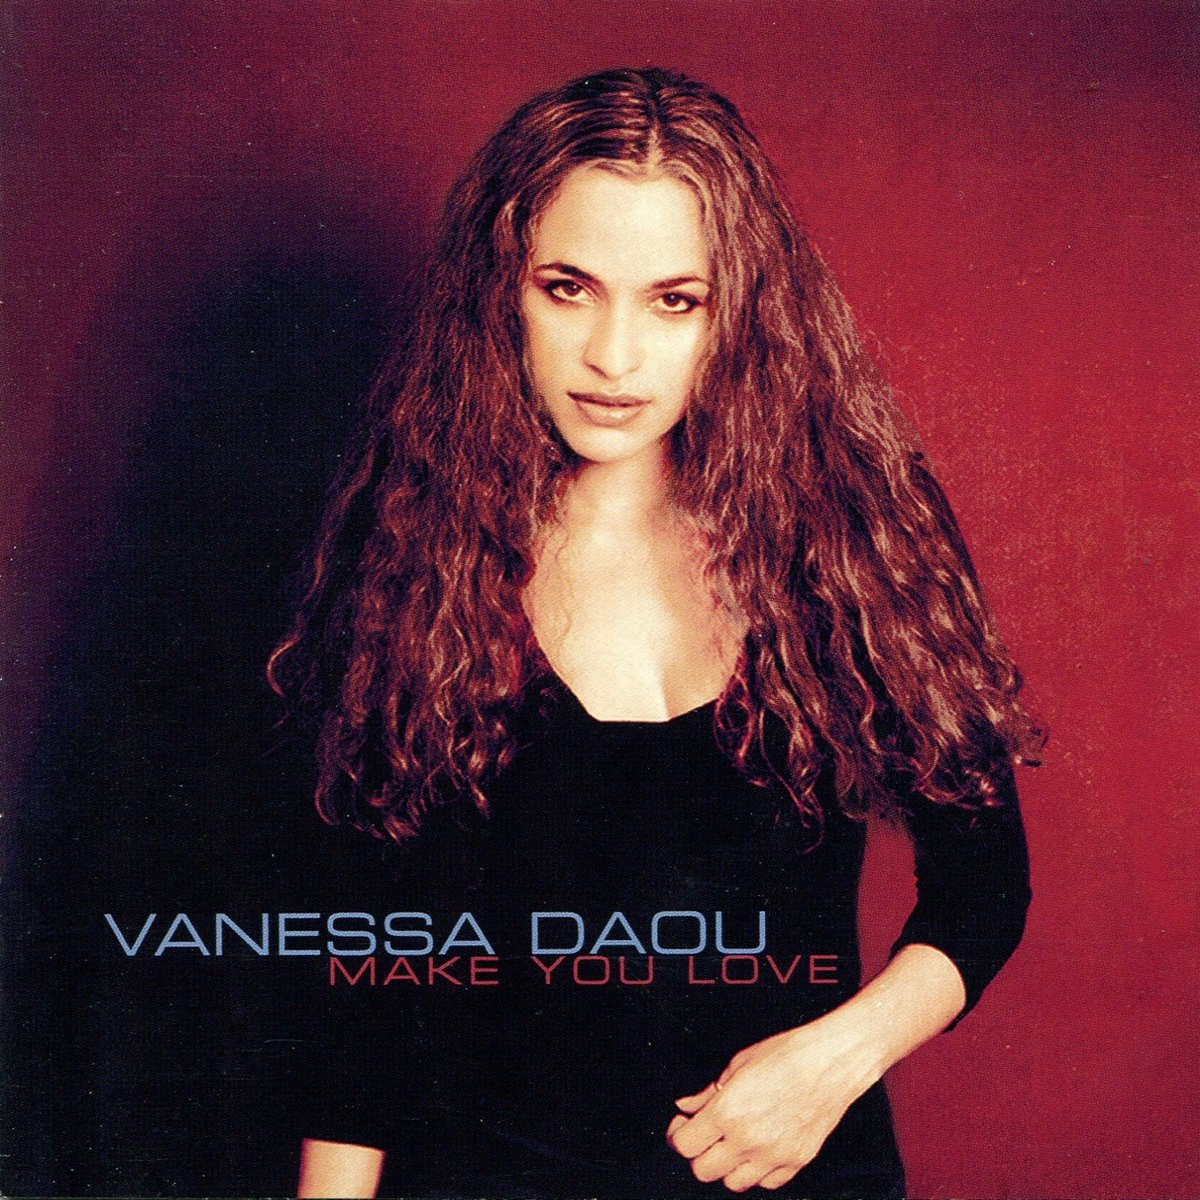 Vanessa Daou, Make You Love